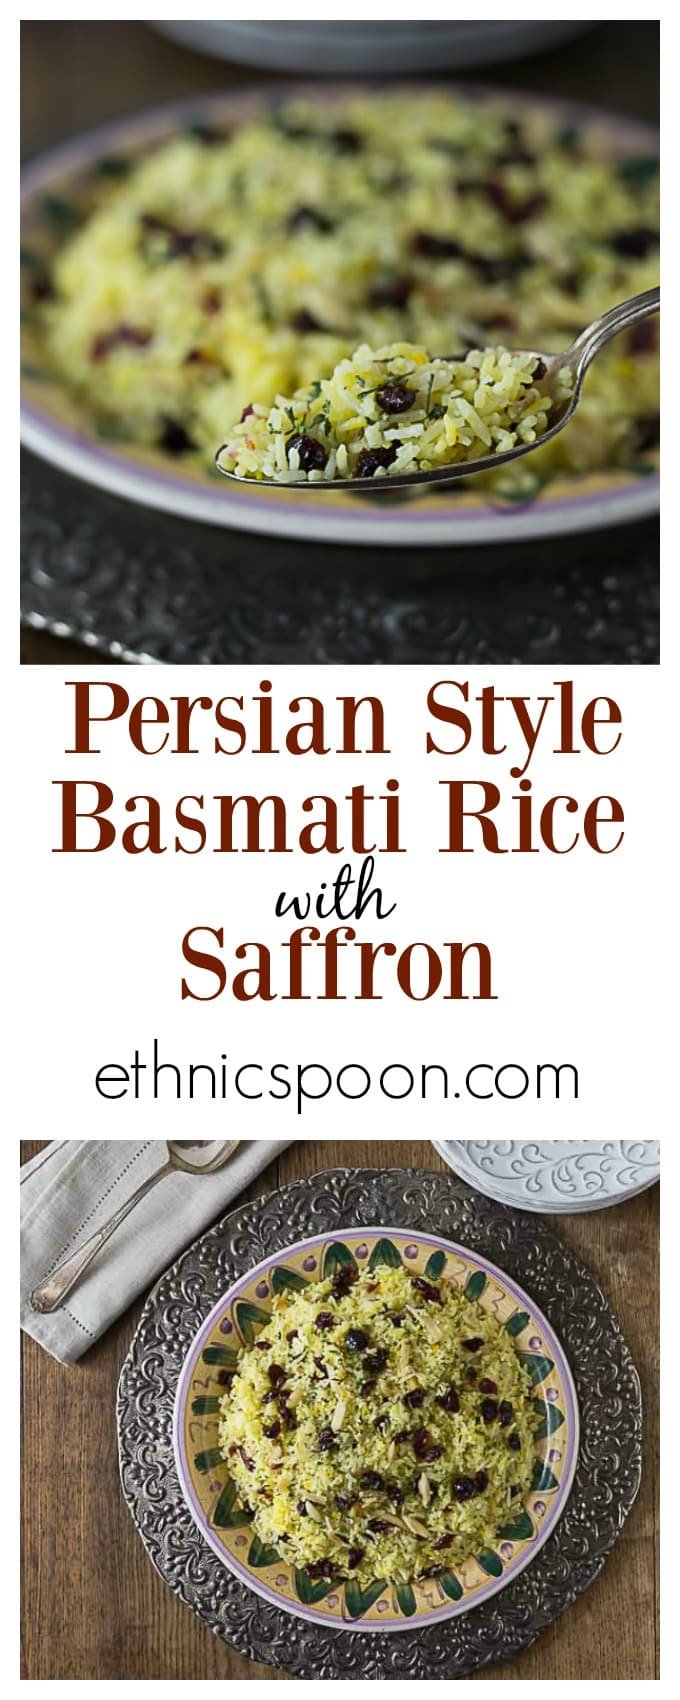 This delicious Persian style saffron rice with almonds and dried cranberries brings a contrast of flavors and textures. Light and fluffy basmati rice cooked to perfection with some crunchy almond and tangy Craisins. #BetterWithCraisins ad | ethnicspoon.com